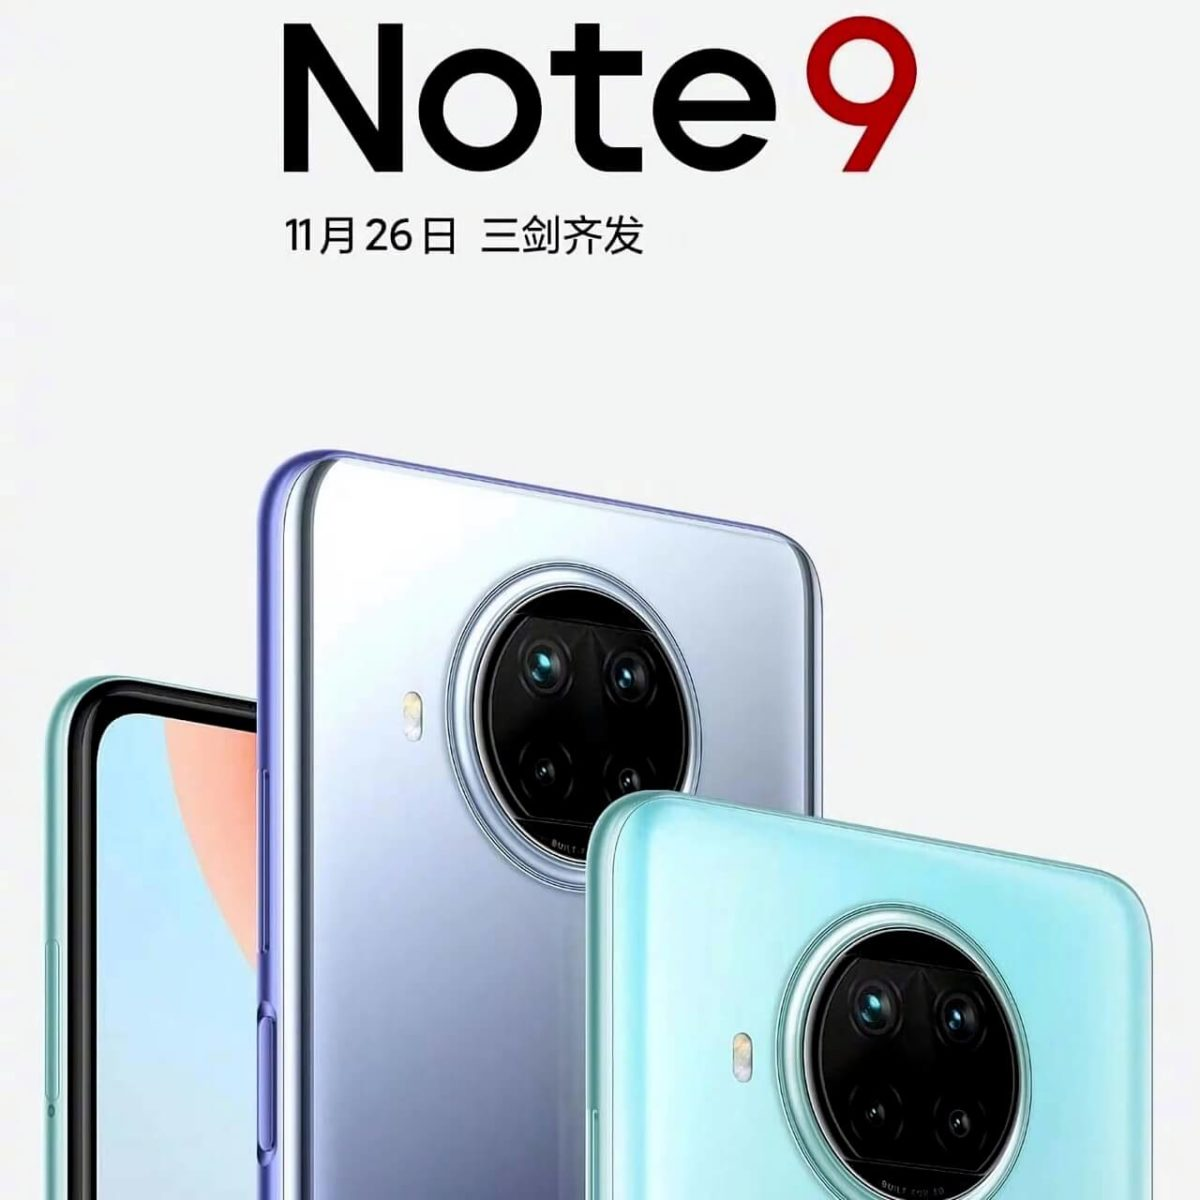 Redmi confirms: The new Redmi Note 9 series will be presented on November 26th